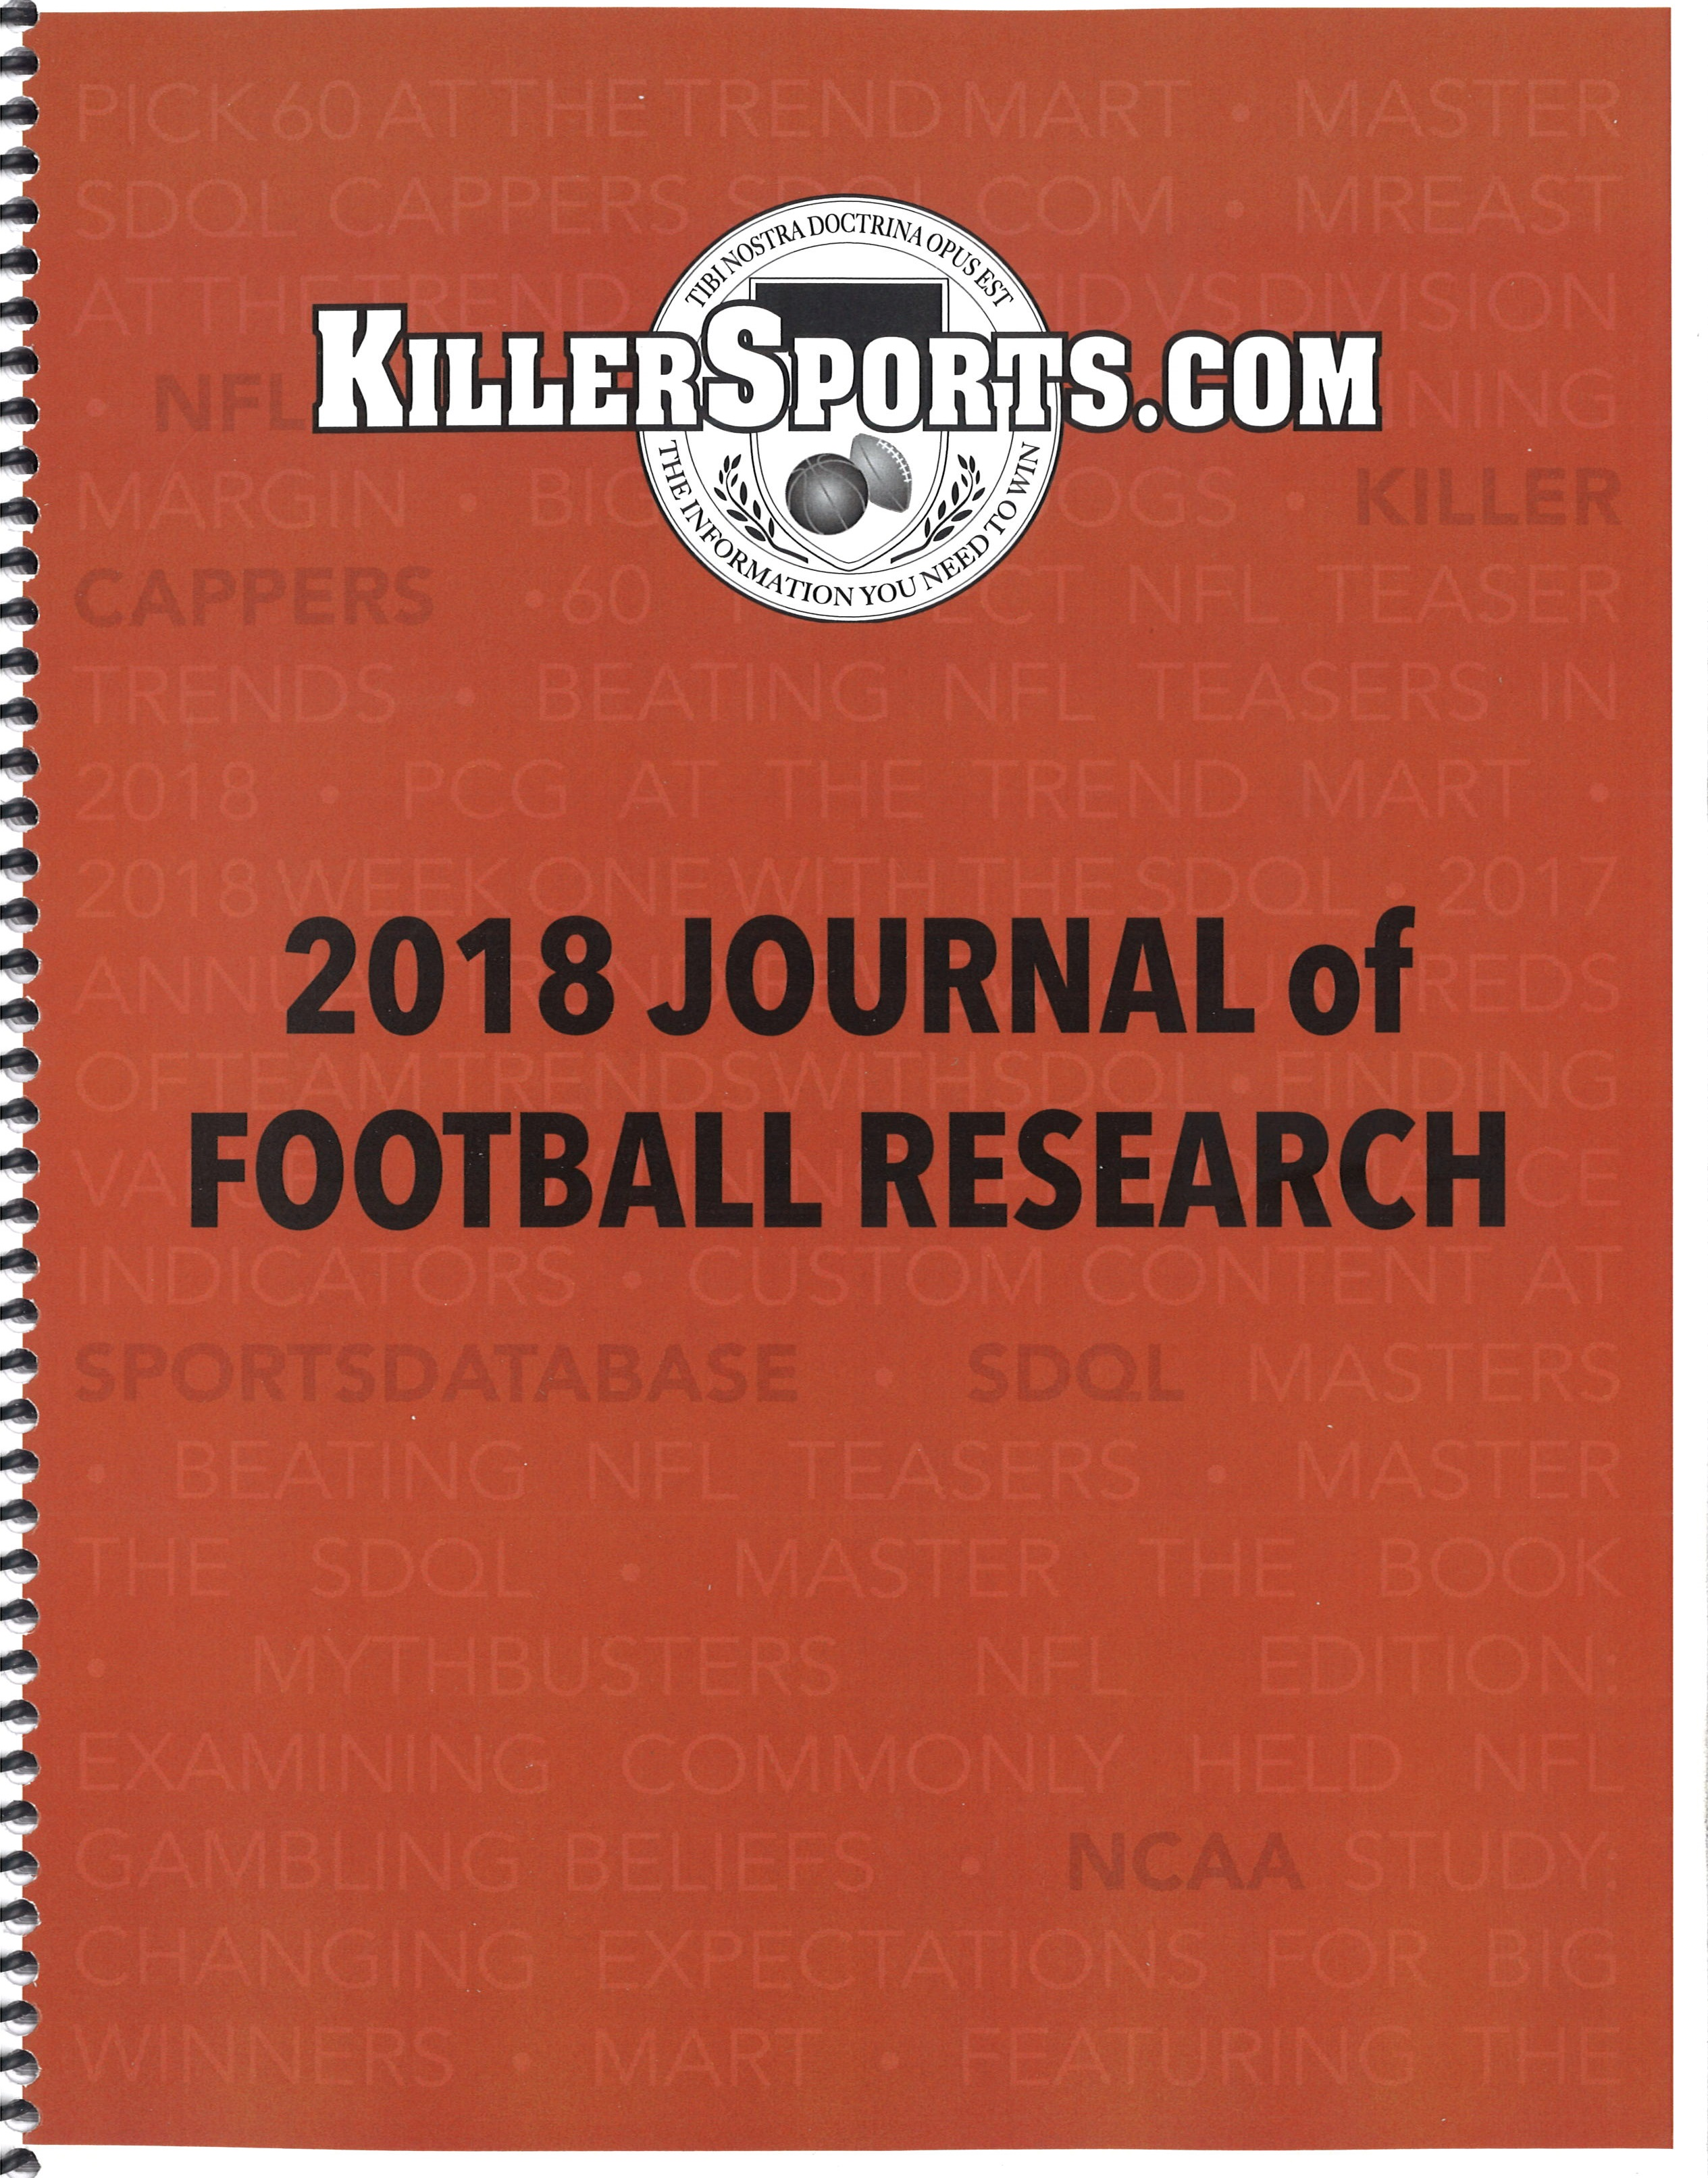 KILLERSPORTS 2018 JOURNAL OF FOOTBALL RESEARCH